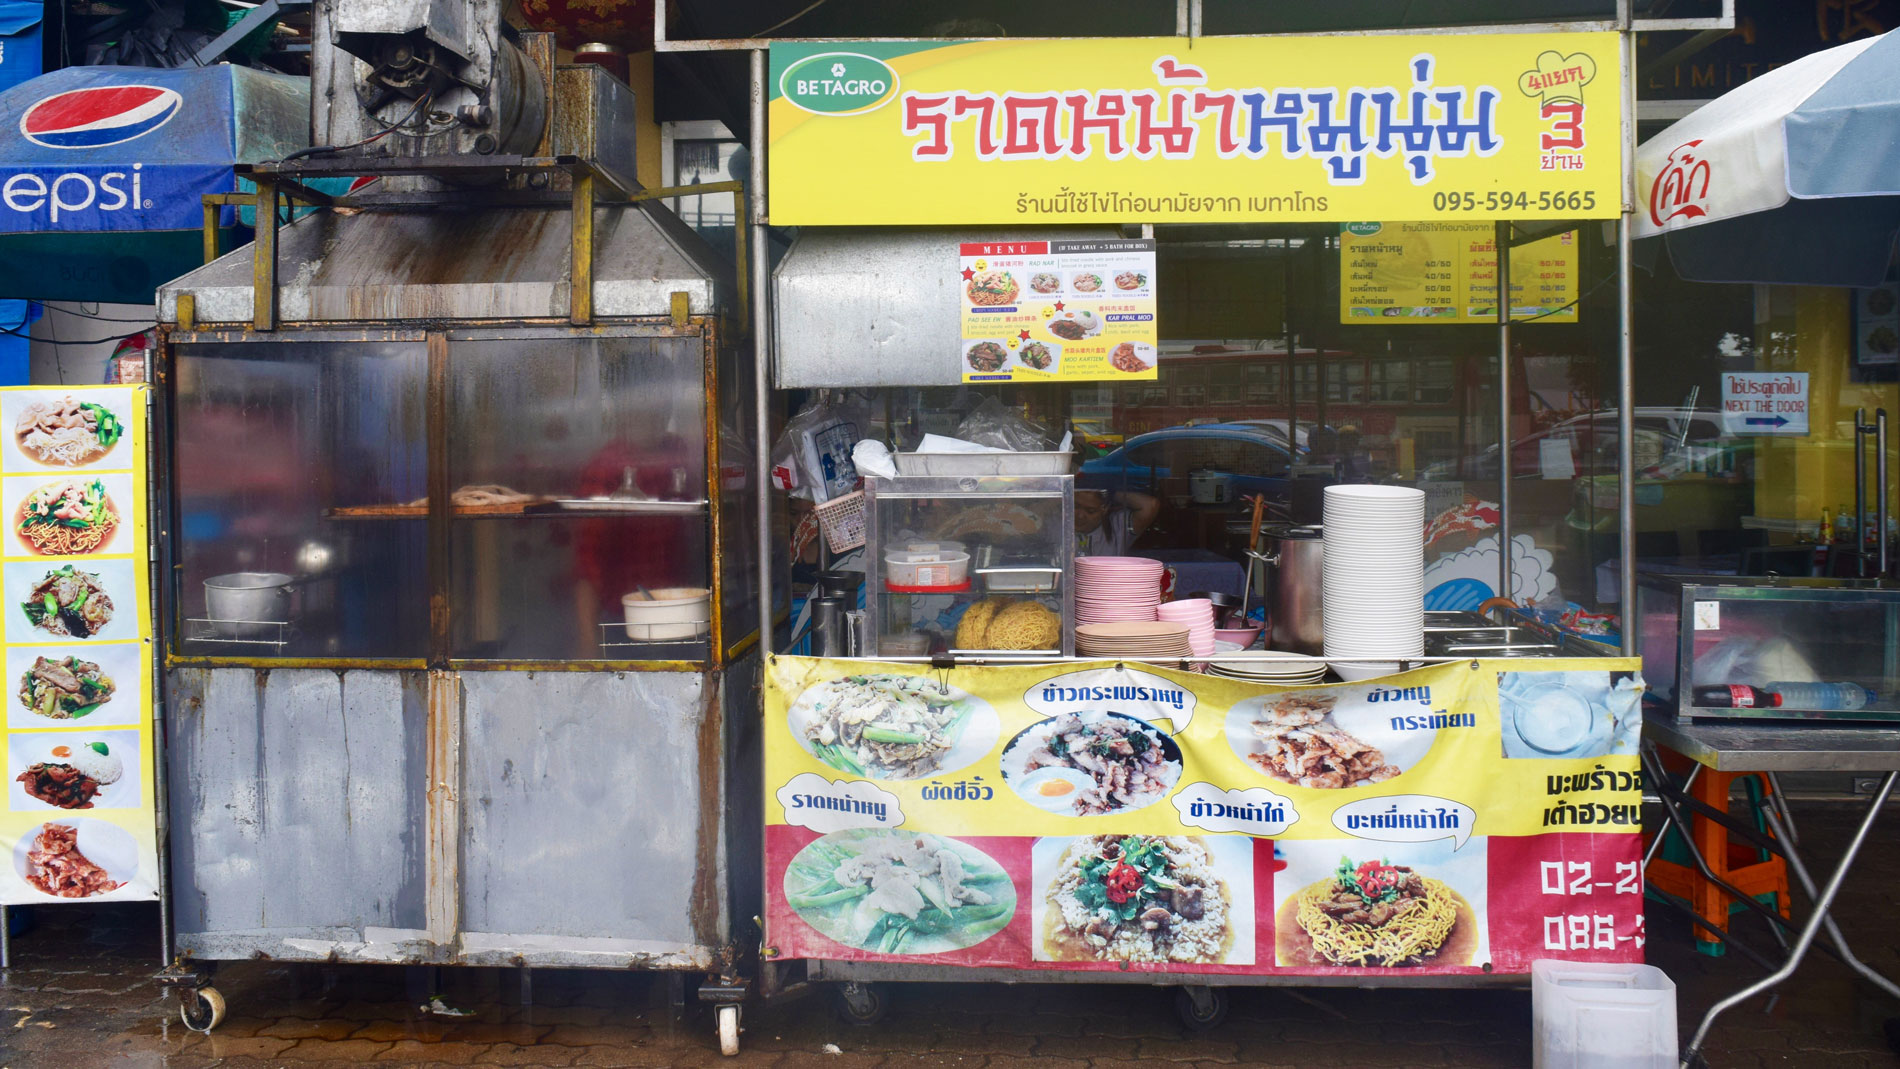 Bangkok Stree Cart